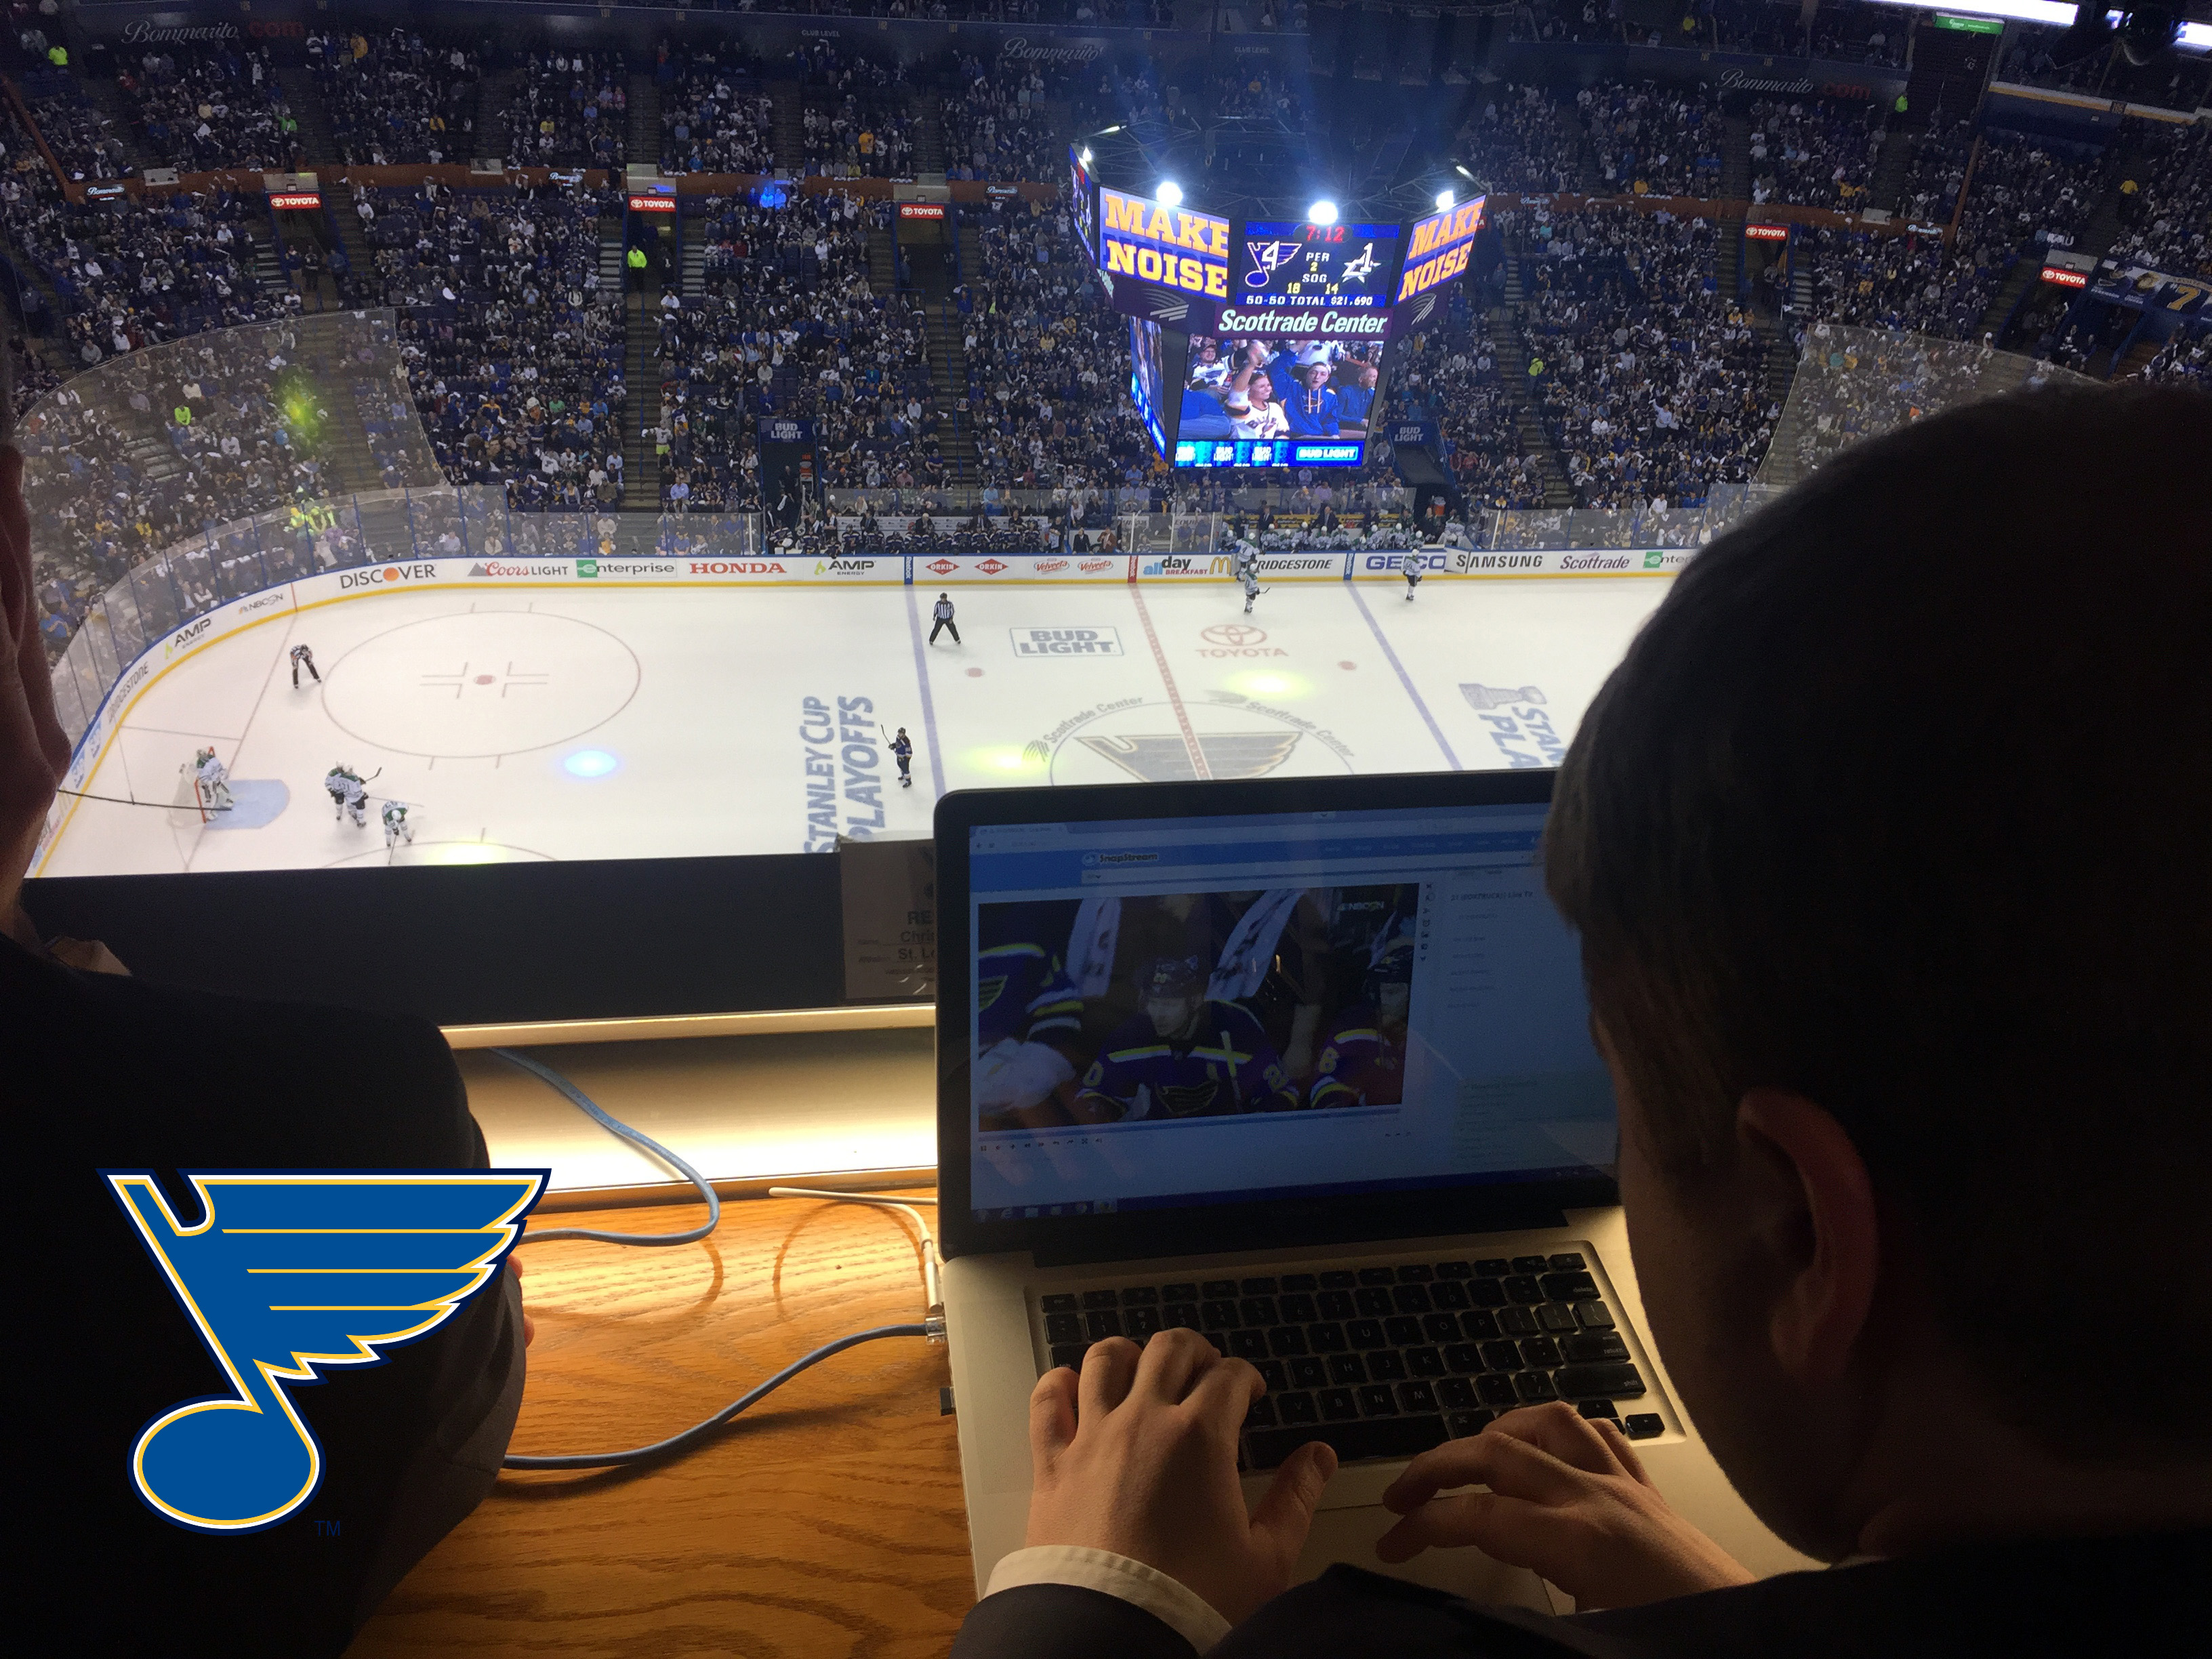 The St. Louis Blues Digital Team Use SnapStream During the NHL 2016 Post-Season